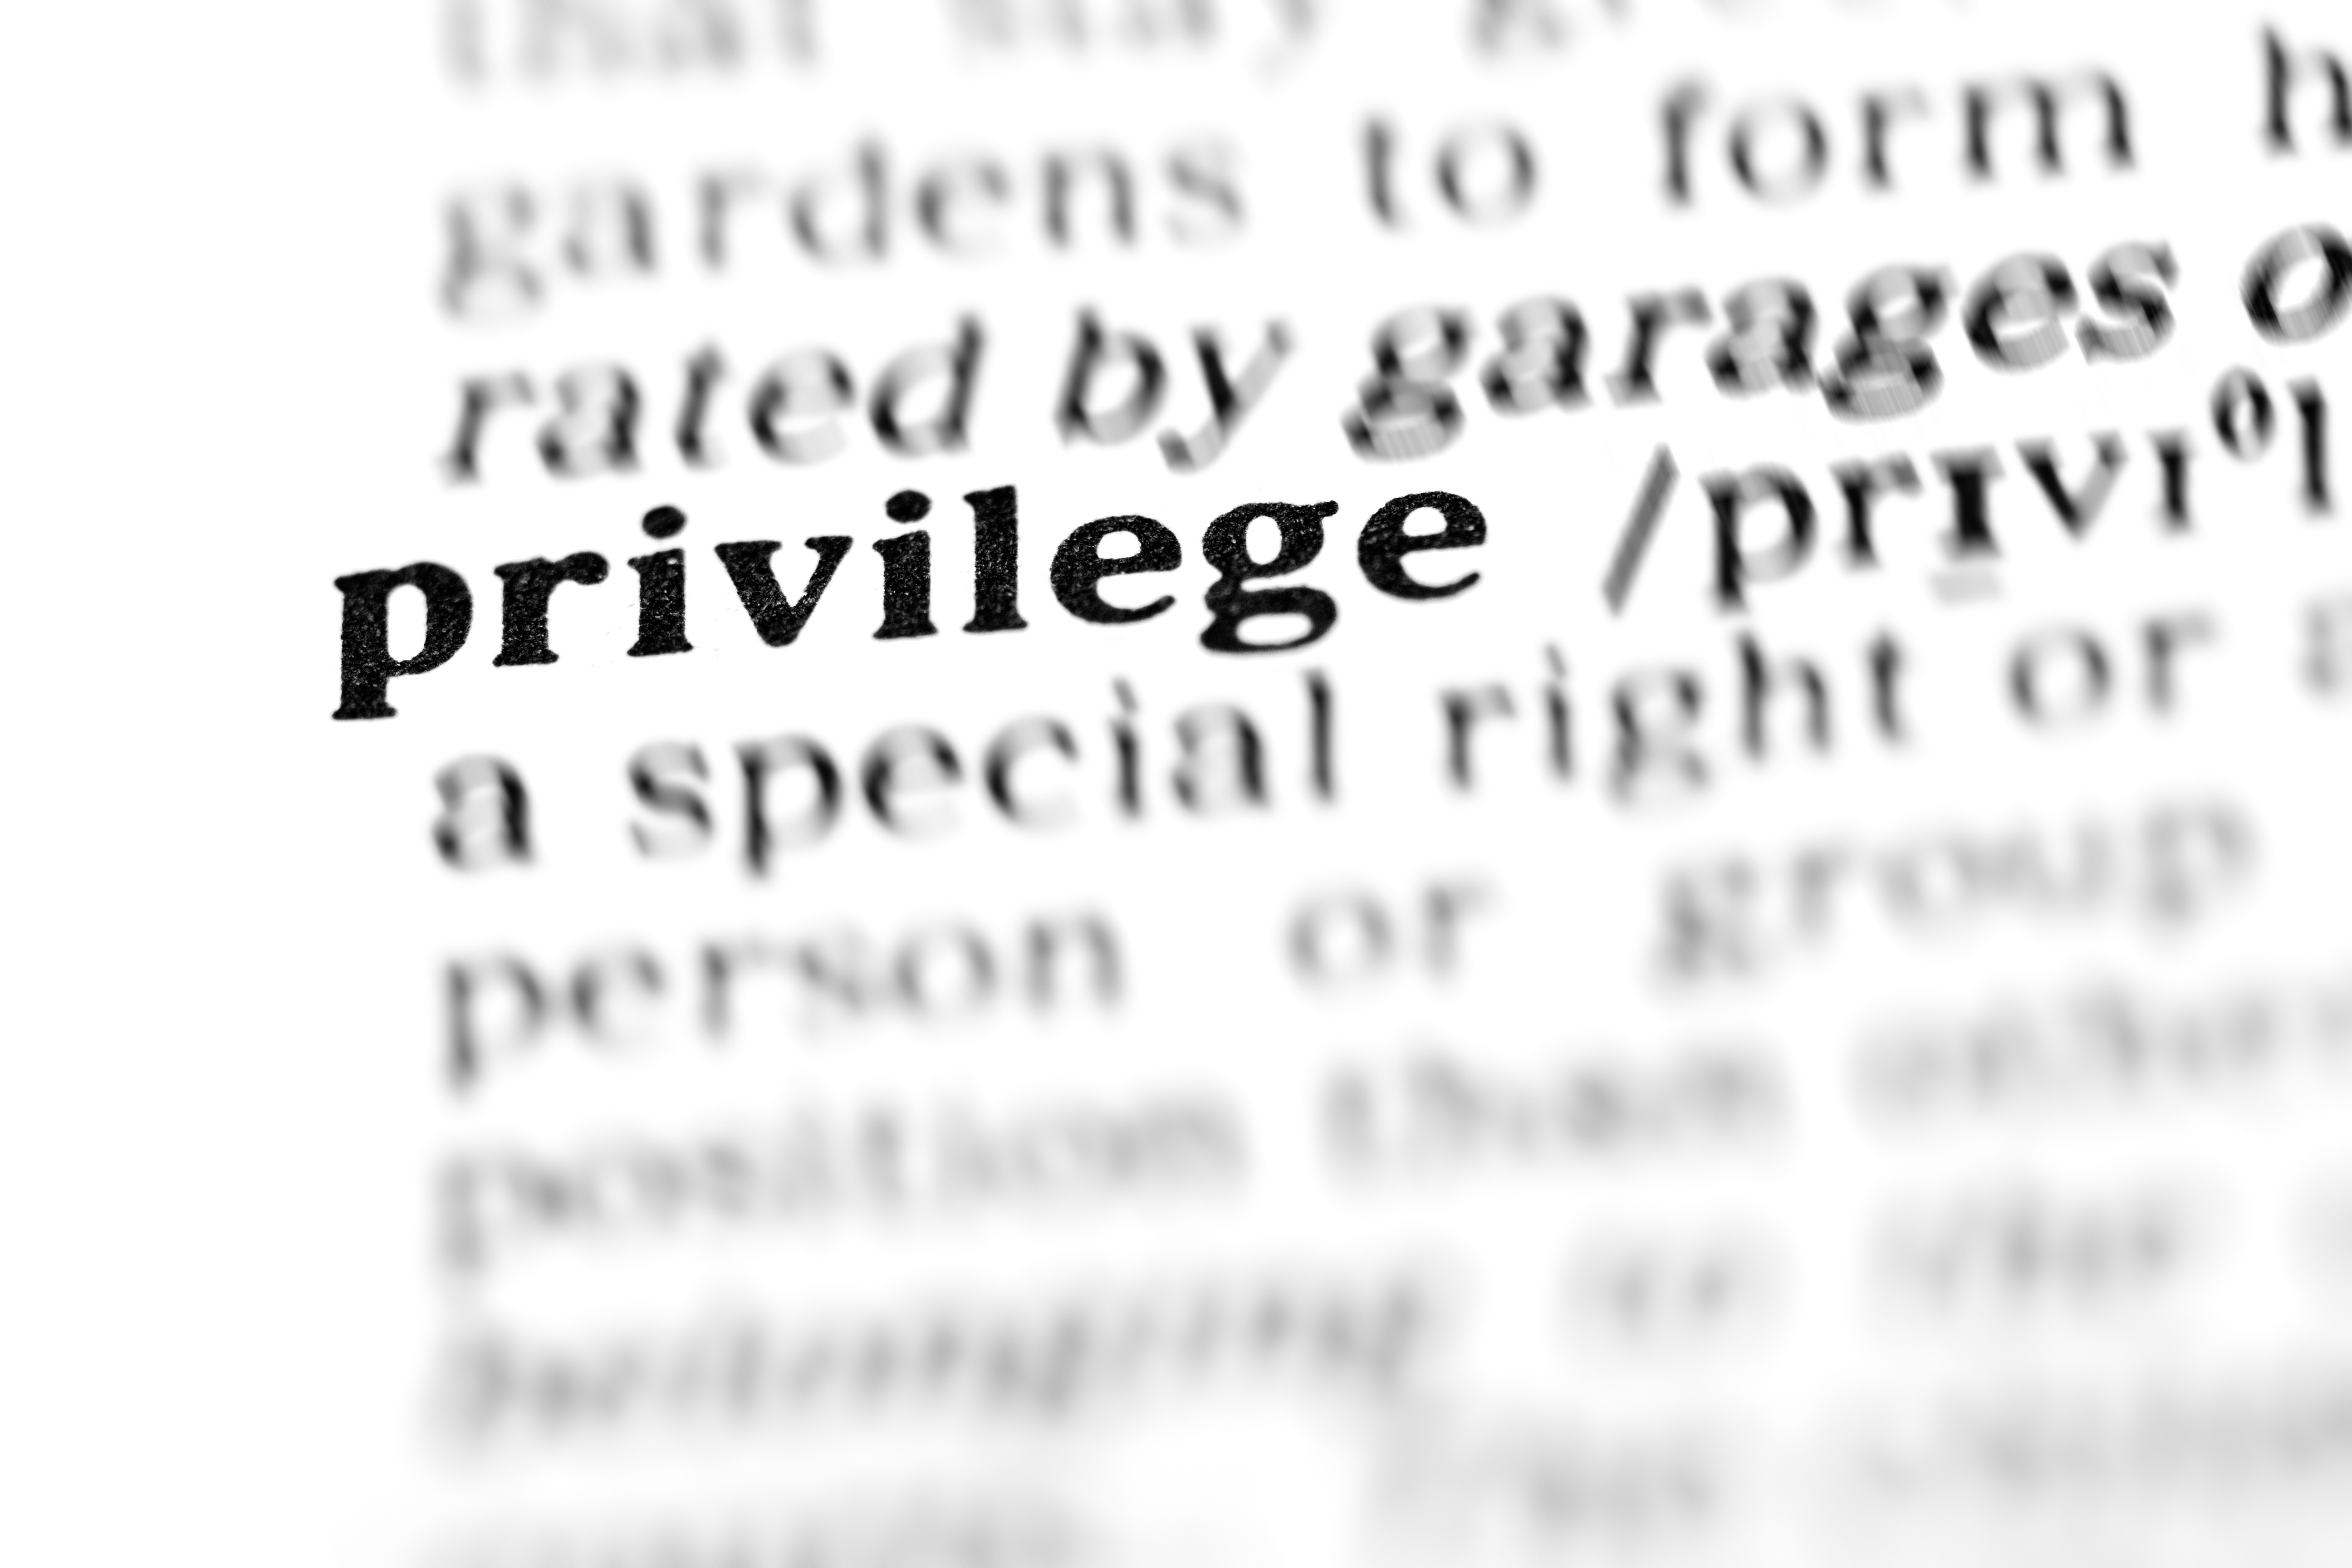 relationship between privilege and oppression